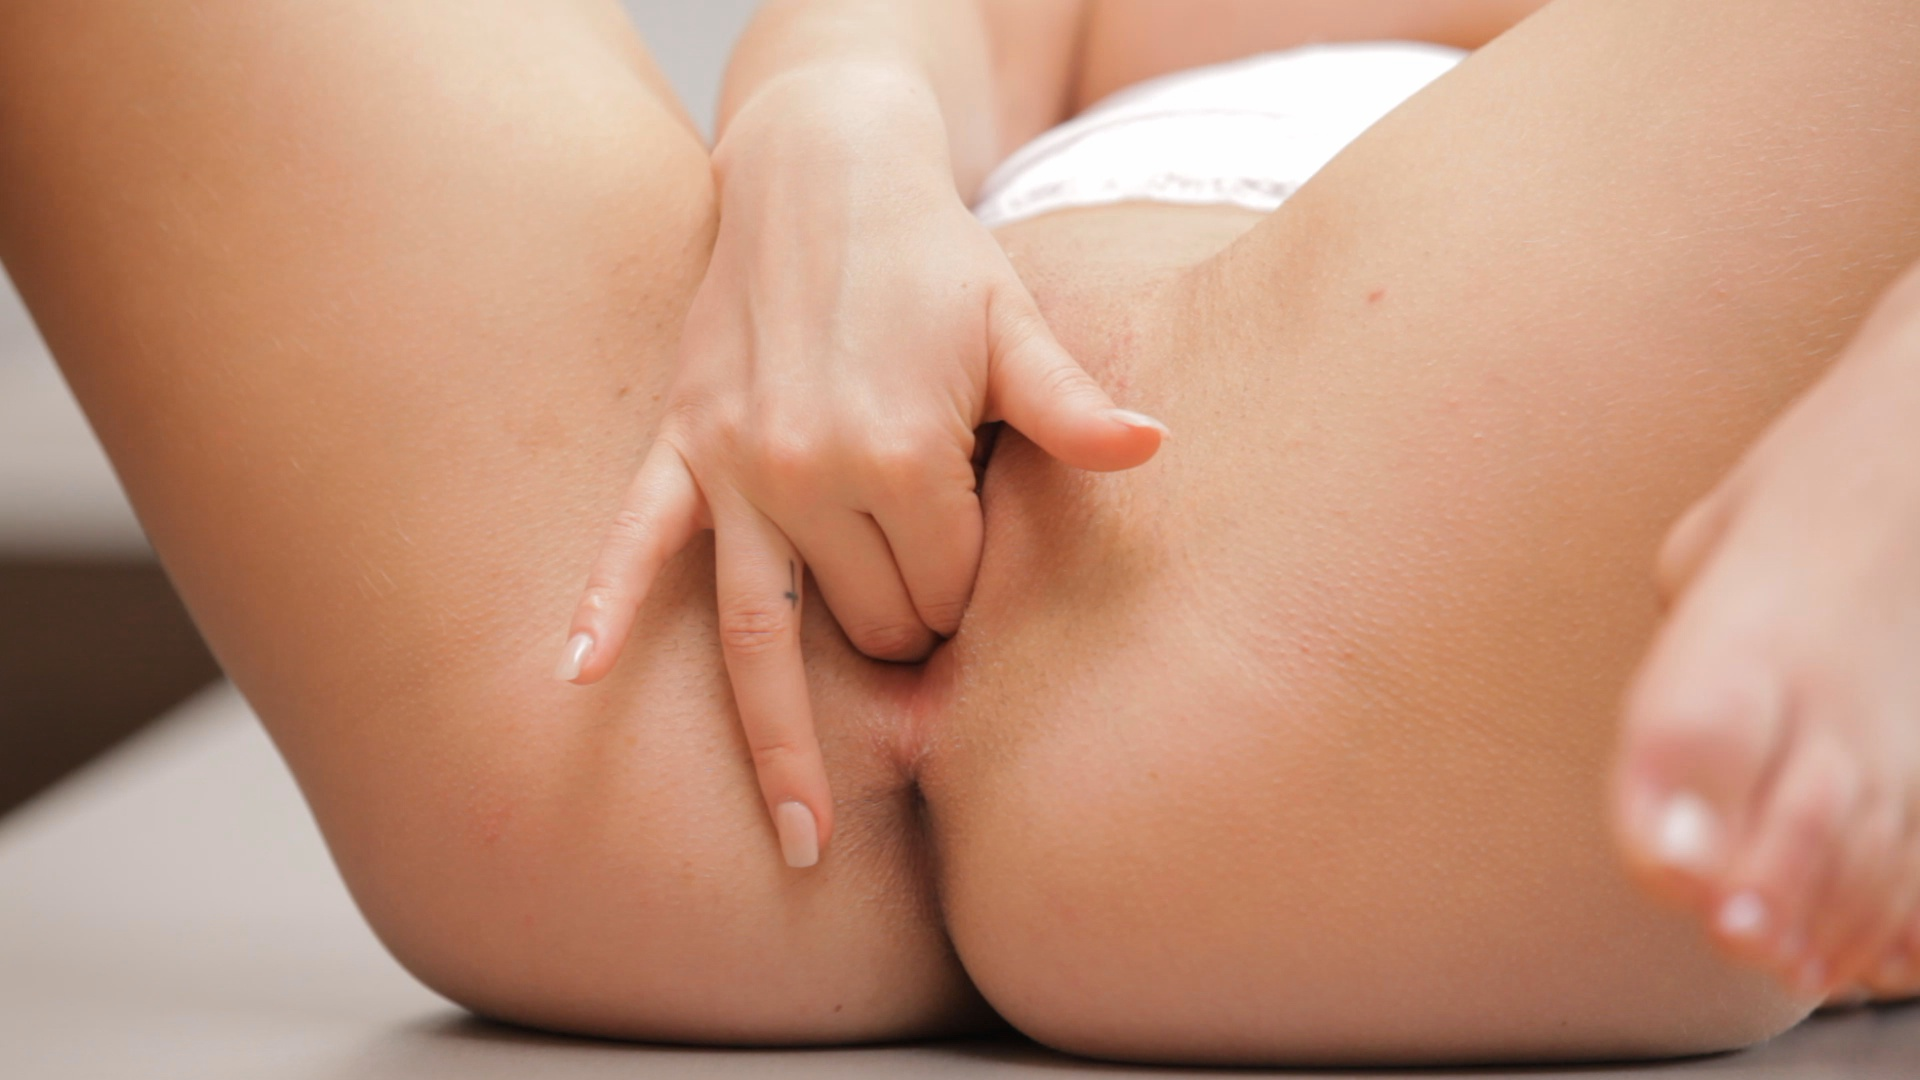 sexiest porn turn ons